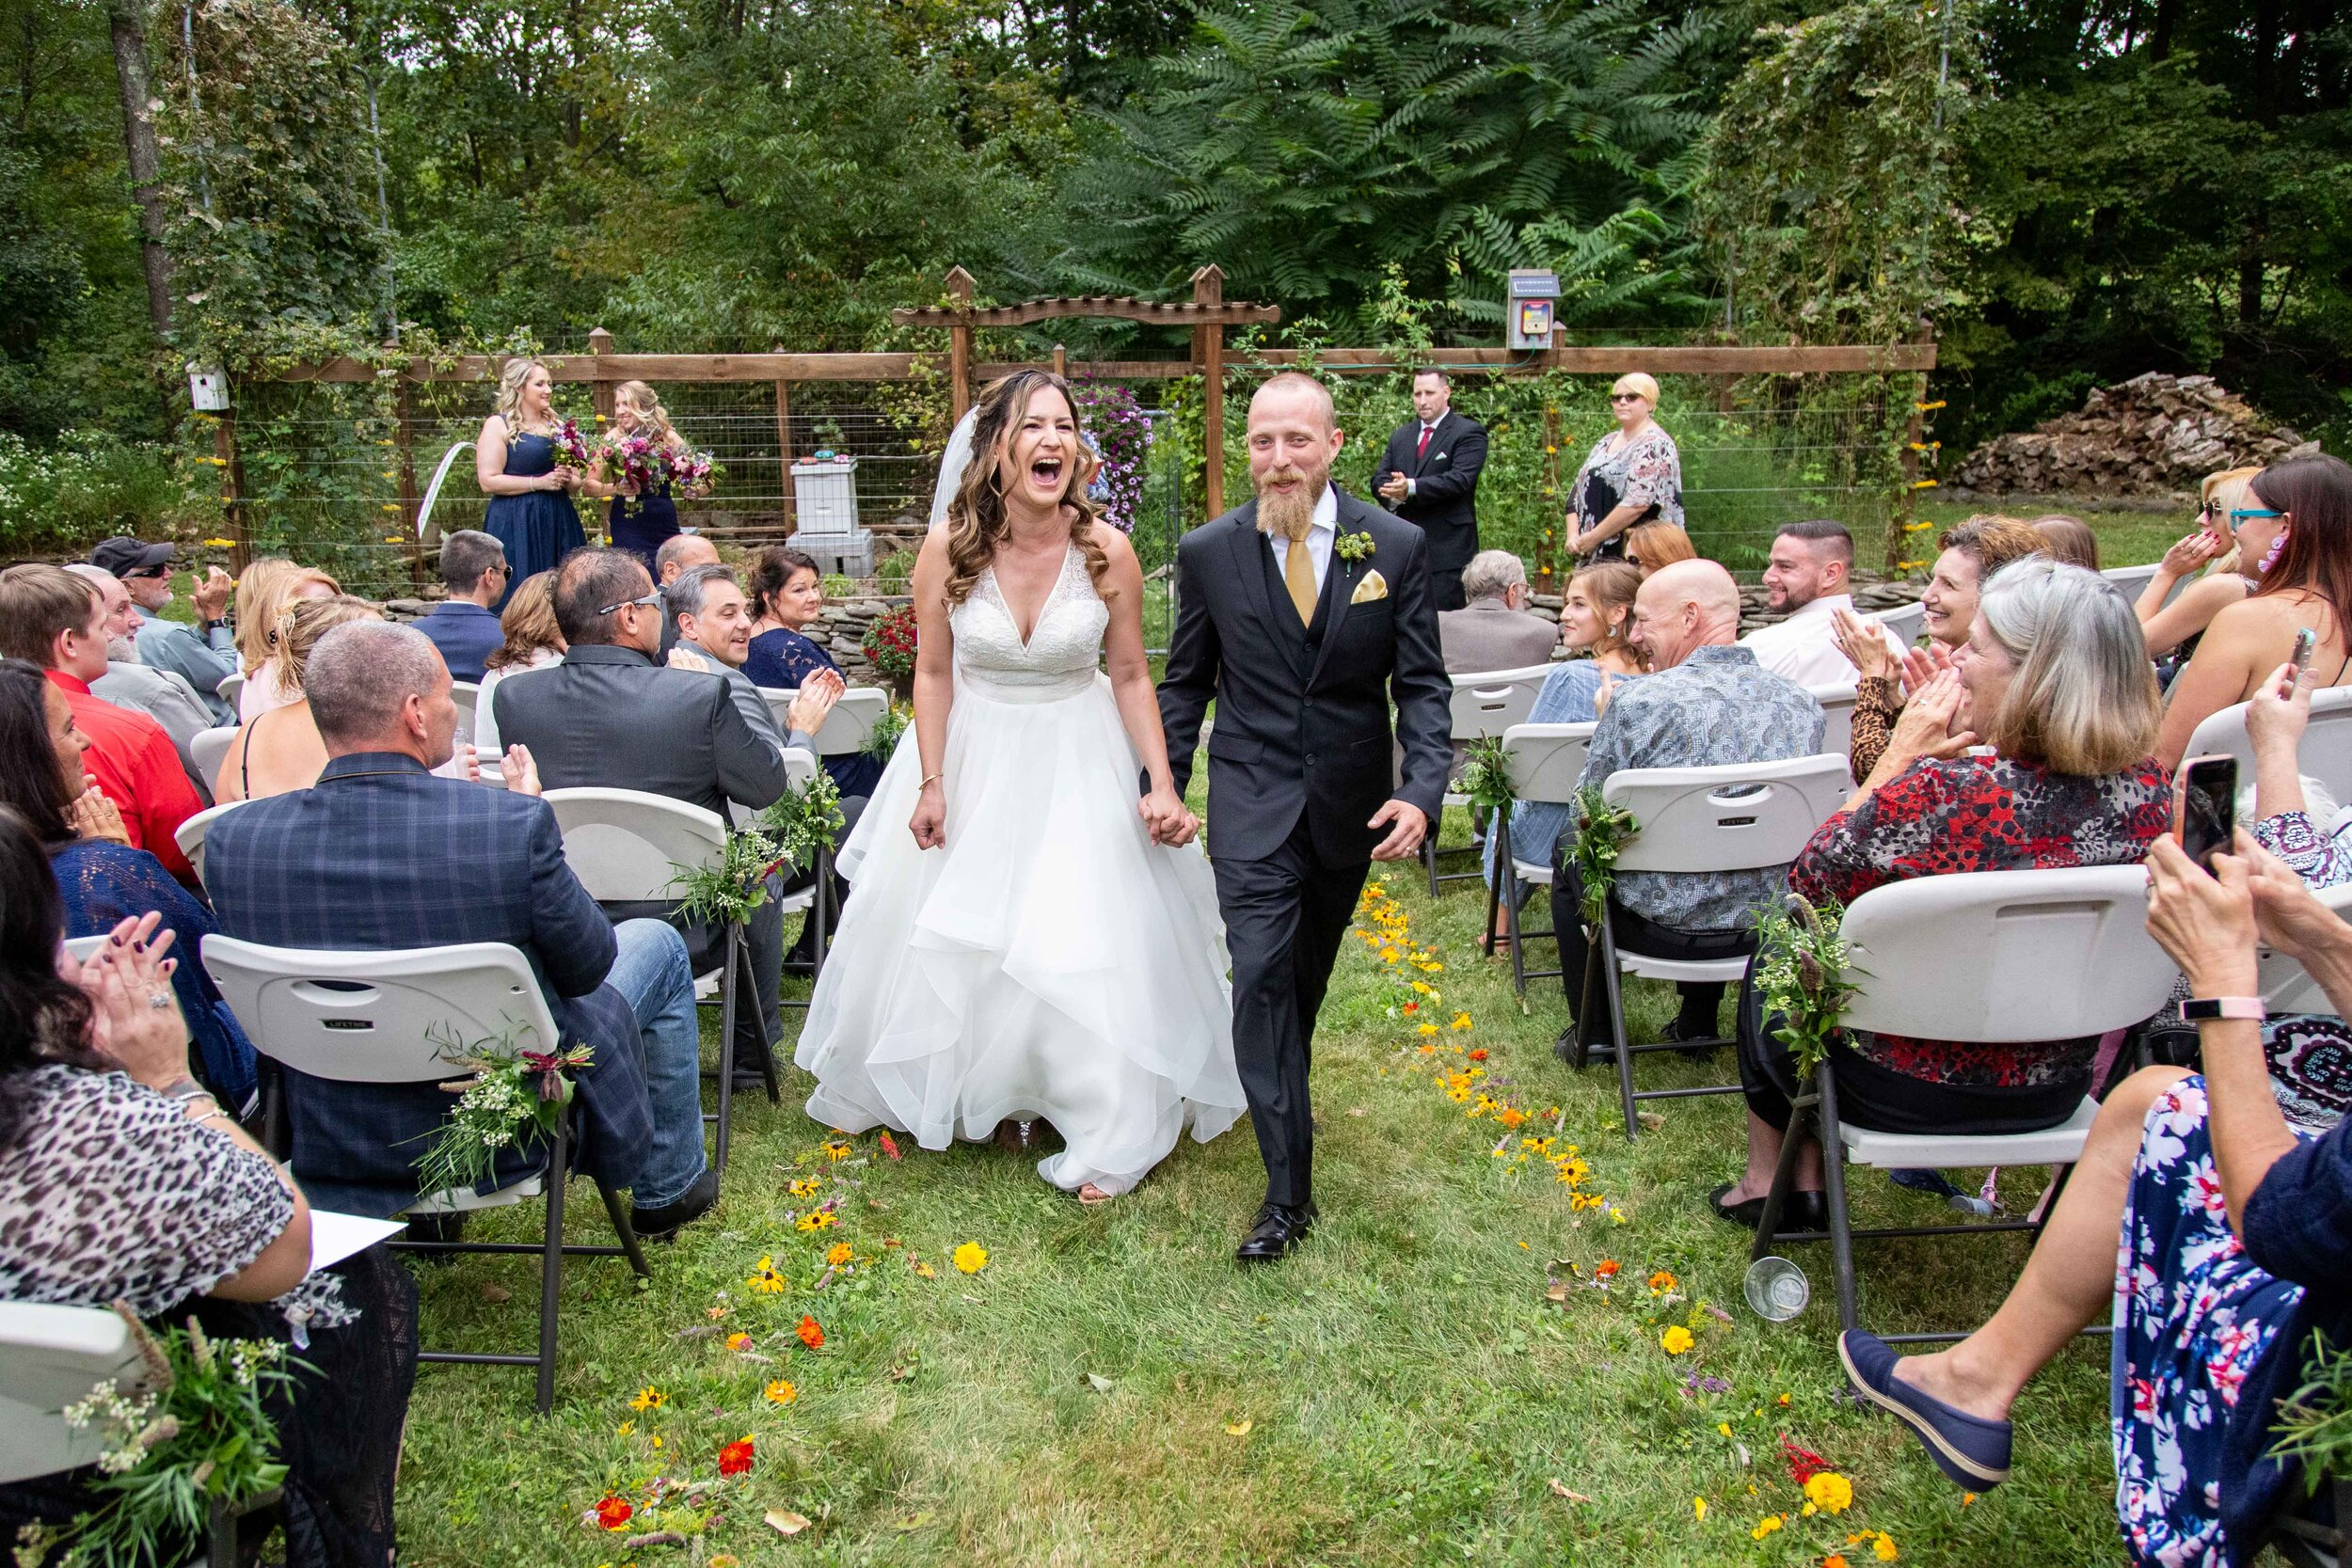 Backyard Homebrew Wedding in Branchville NJ by Dan Schenker Photography-28.jpg